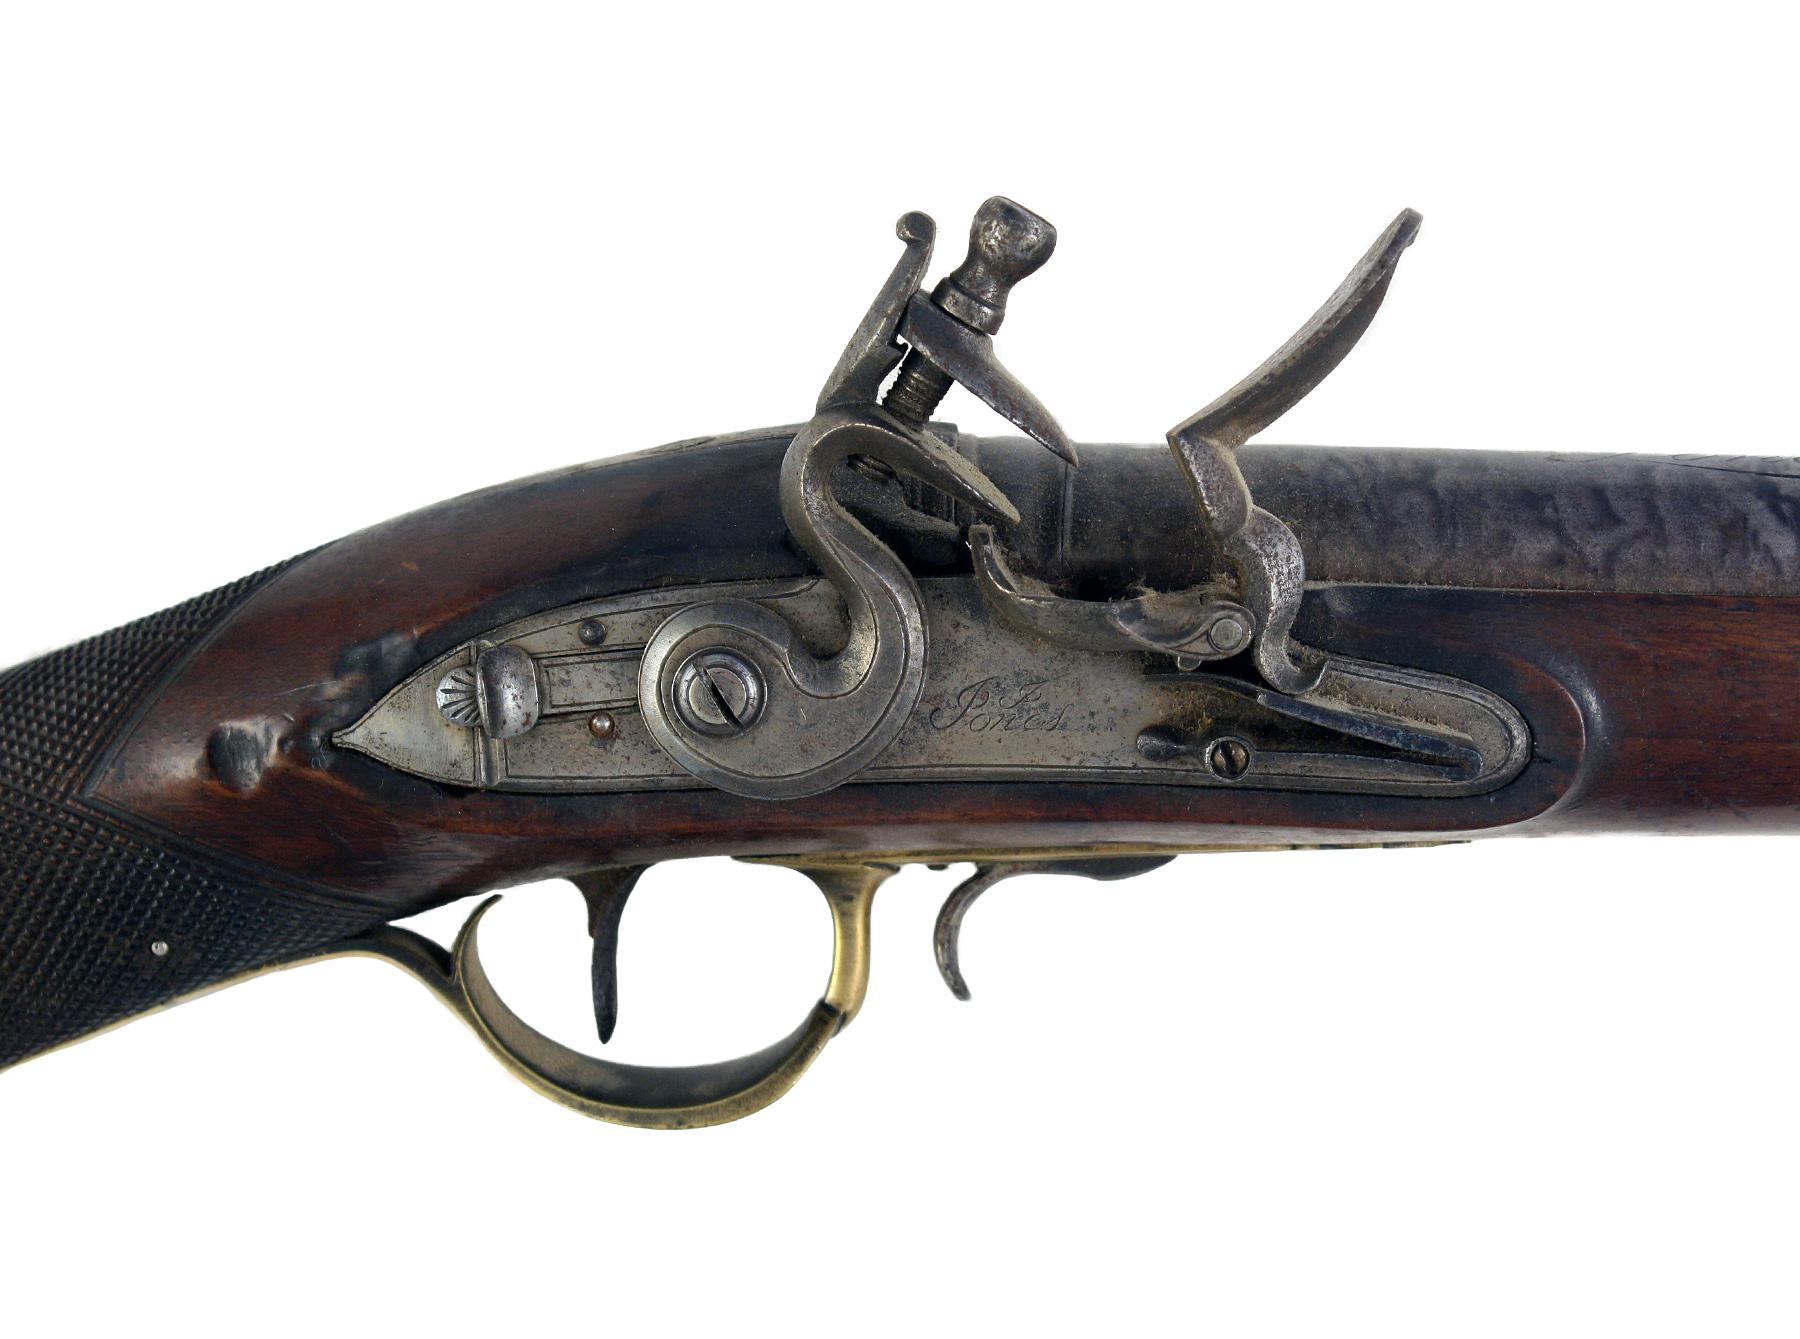 A Steel Barrelled Flintlock Blunderbuss